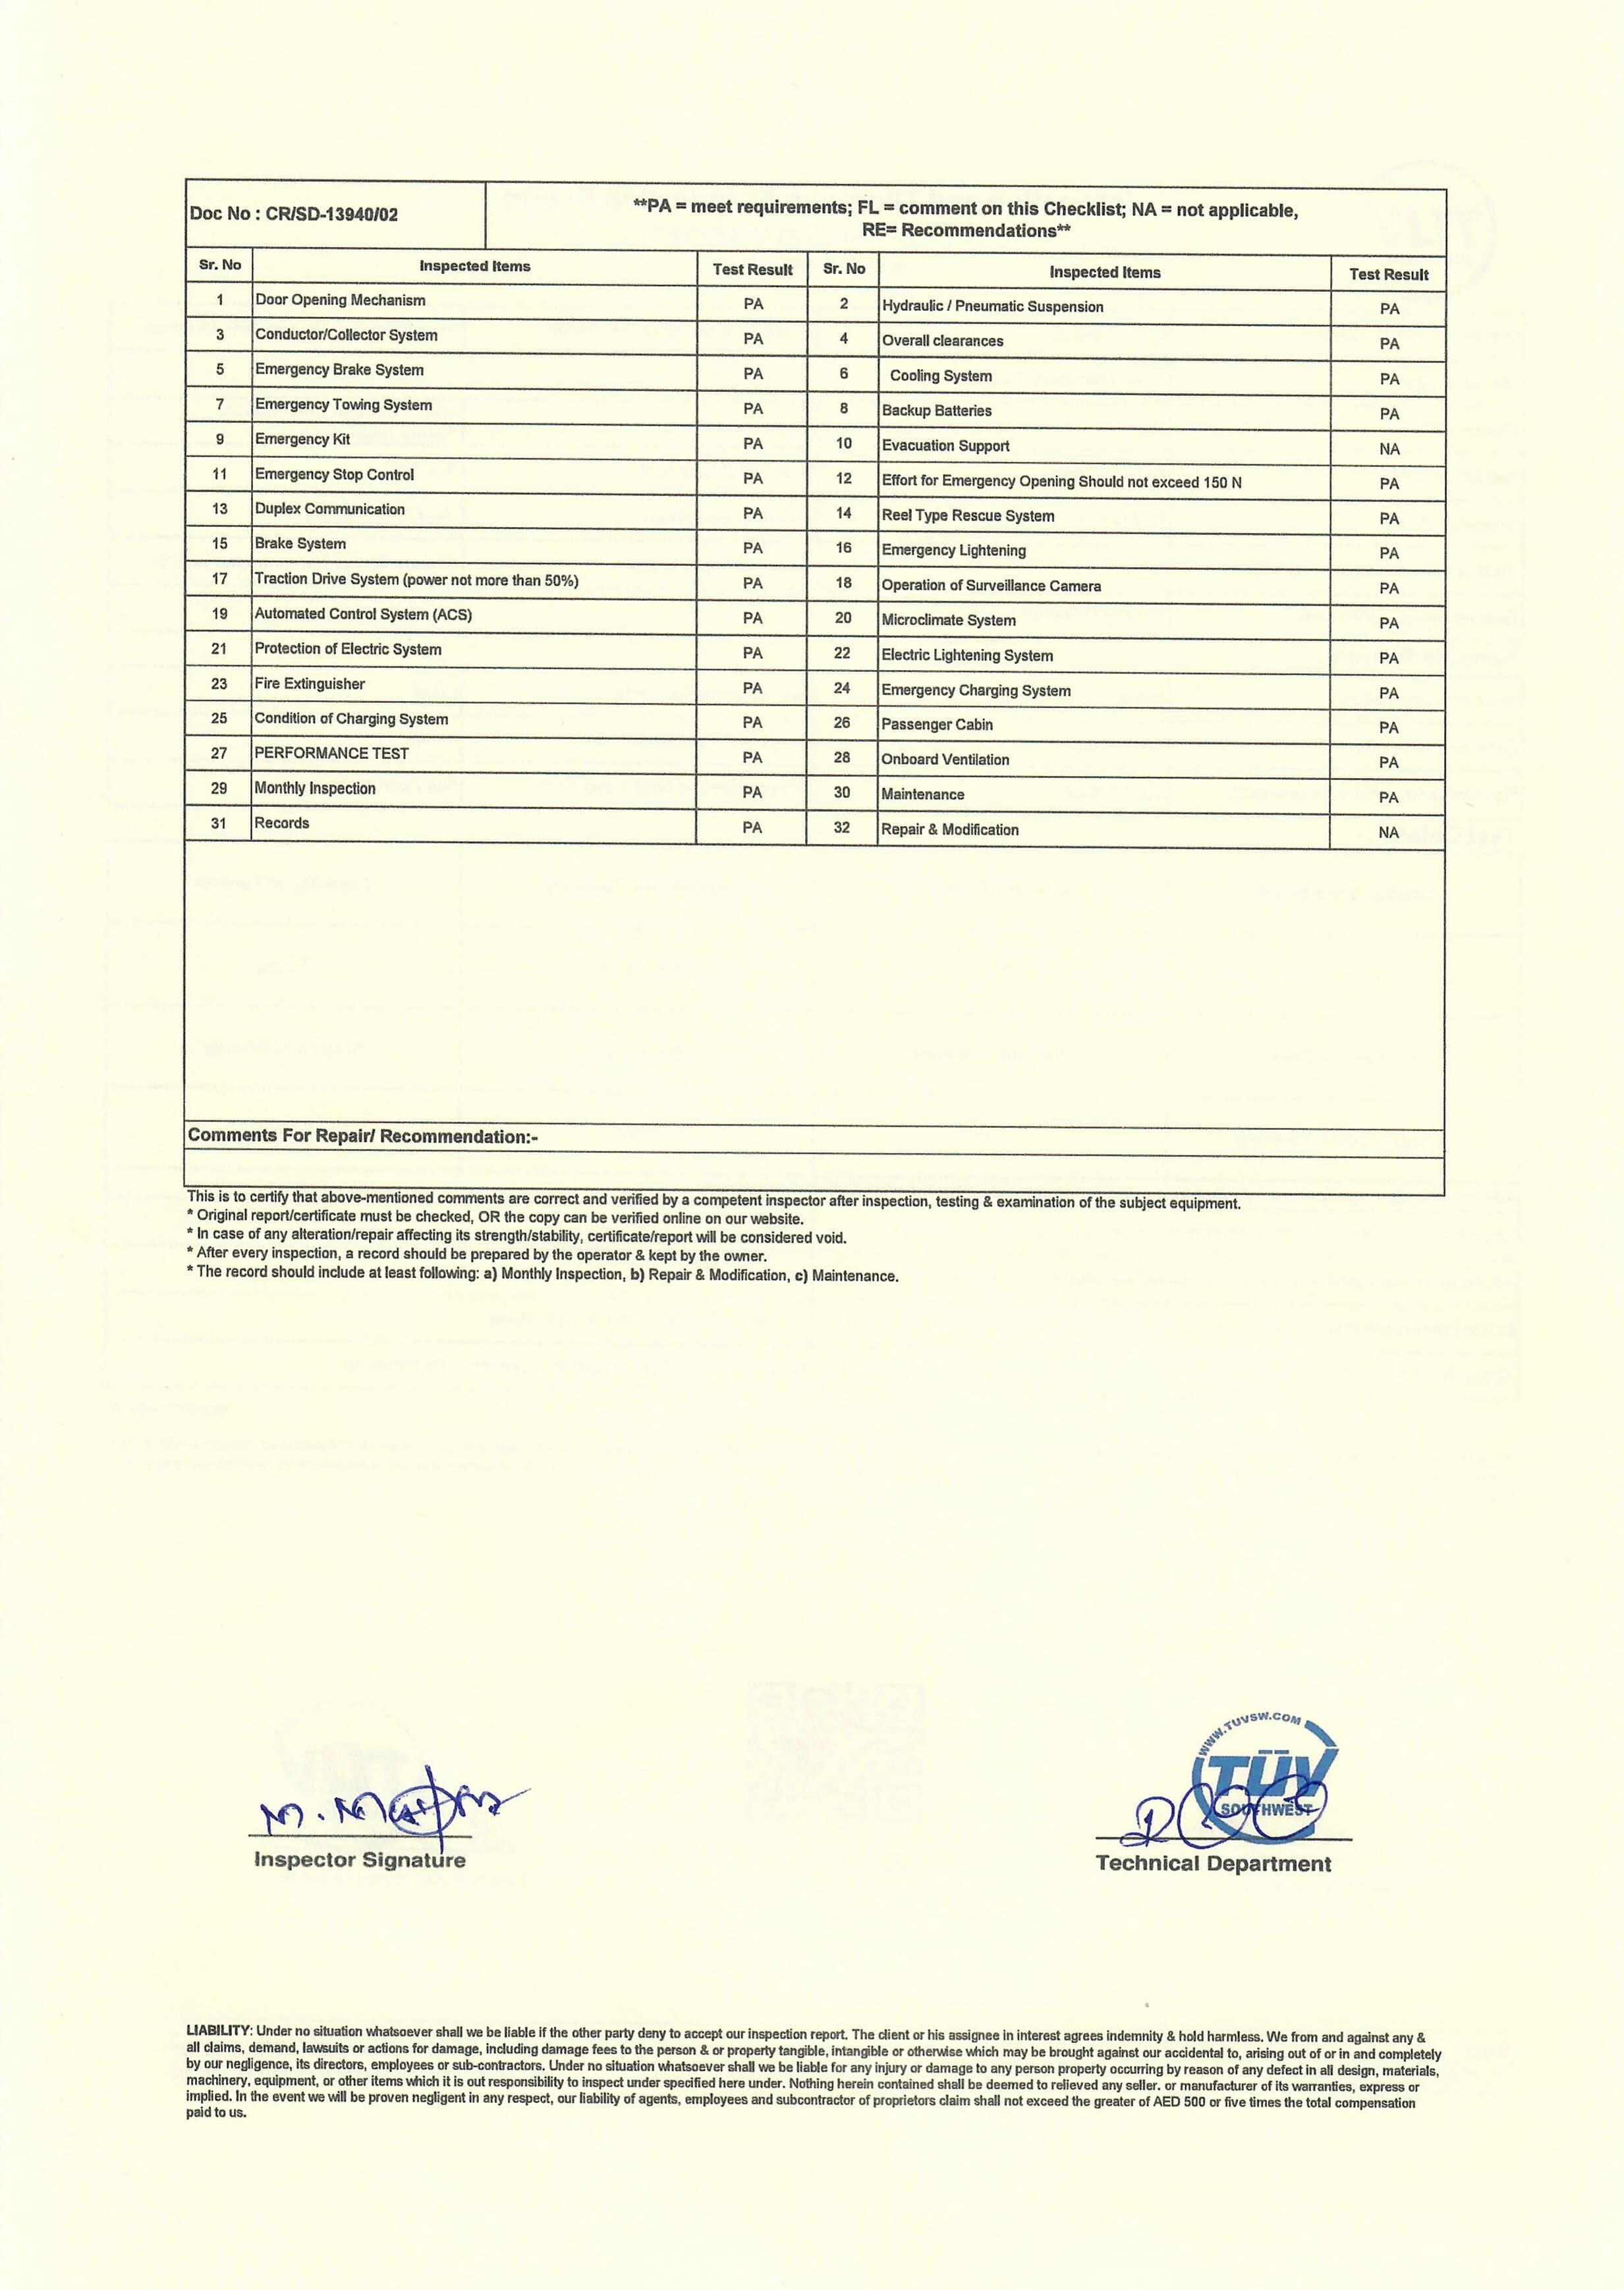 Inspection and Thorough Examination Report_2